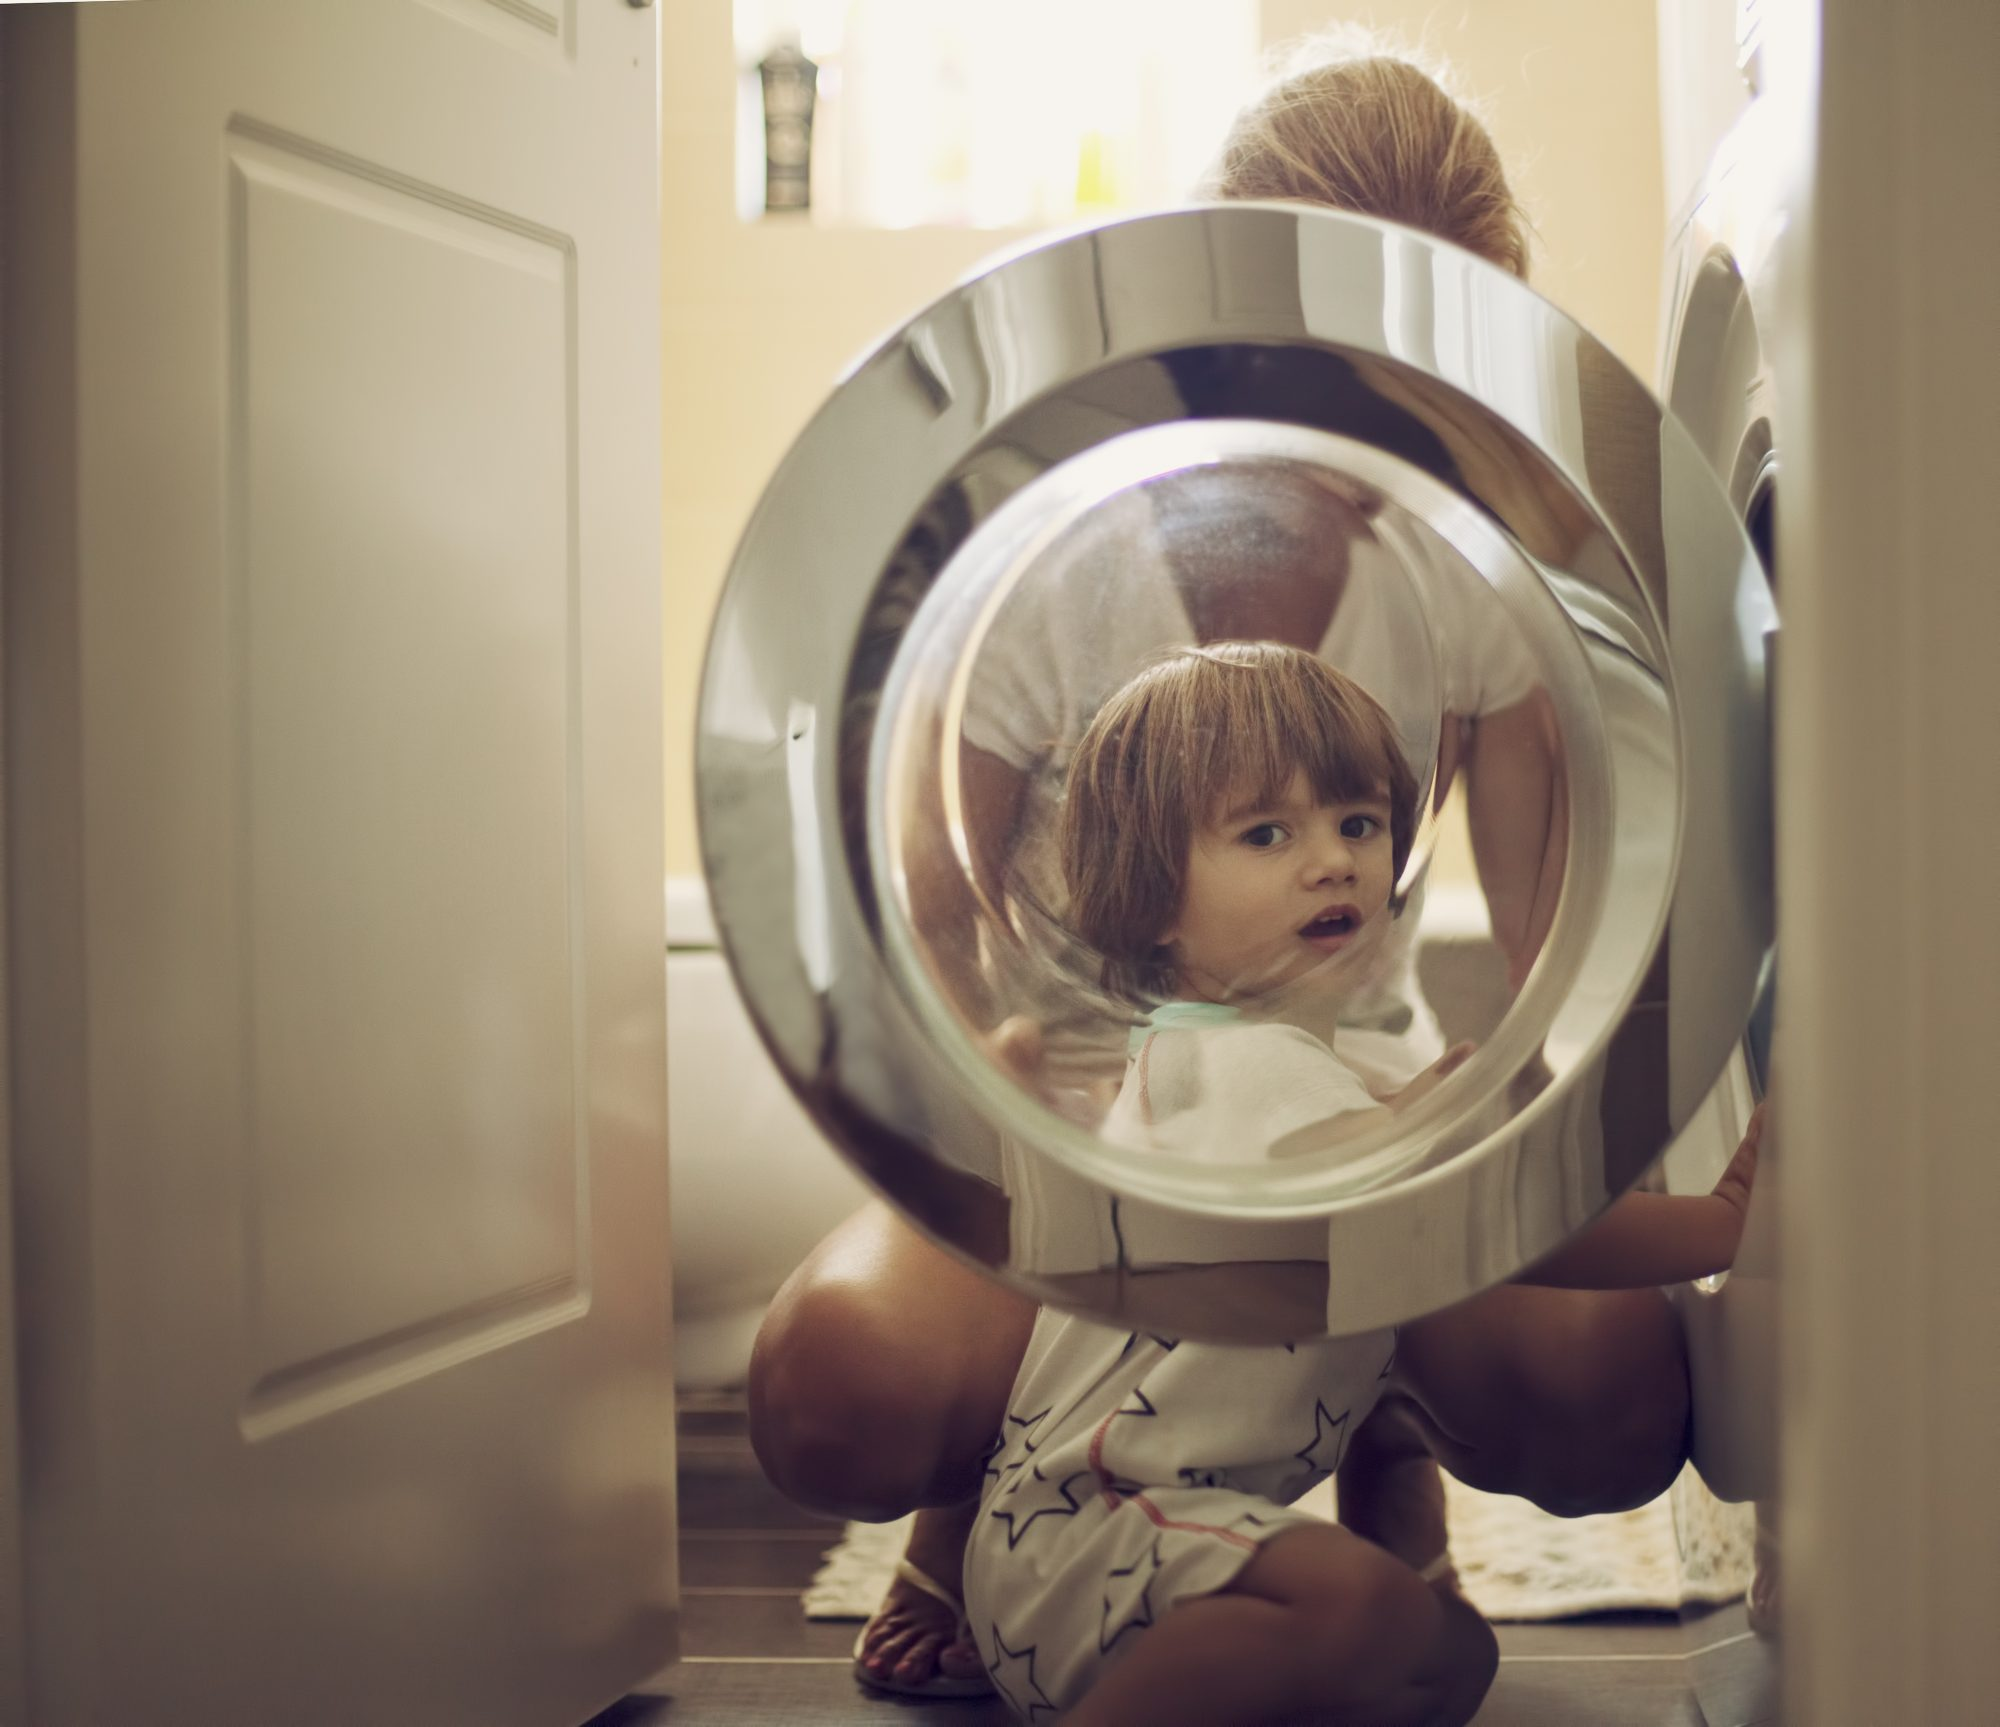 Small boy with his mother in front of a washing machine